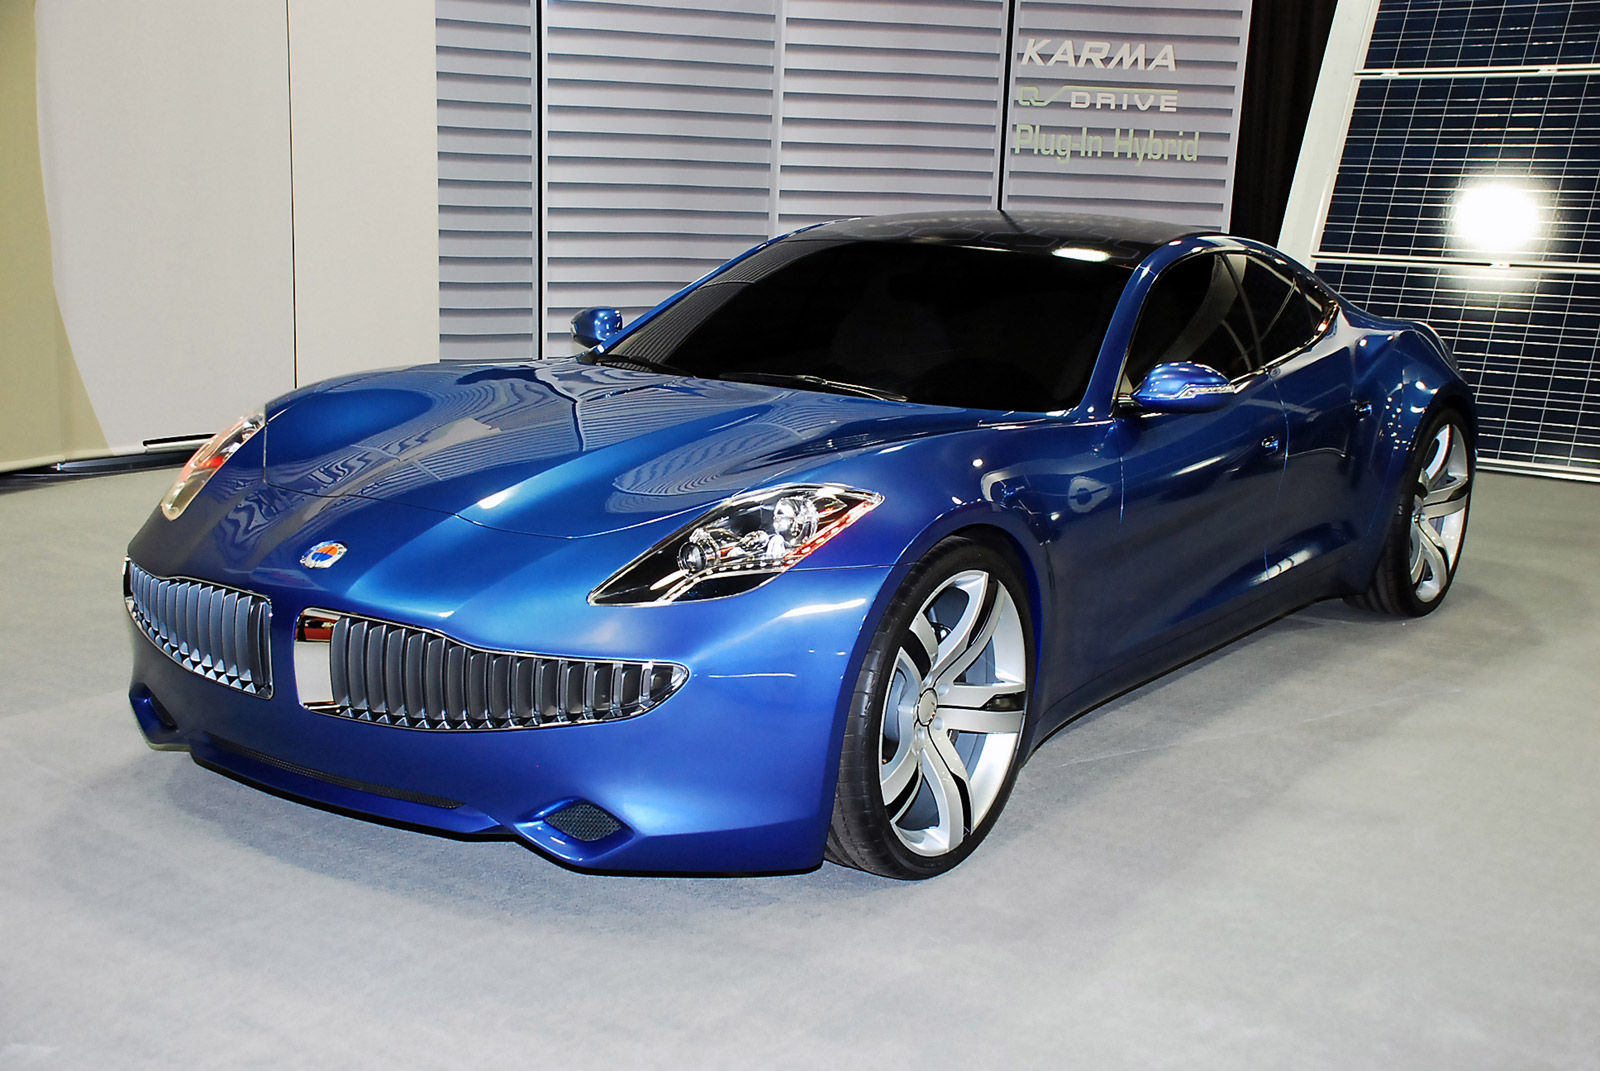 Fisker Karma Will Be Built In Finland News - Top Speed